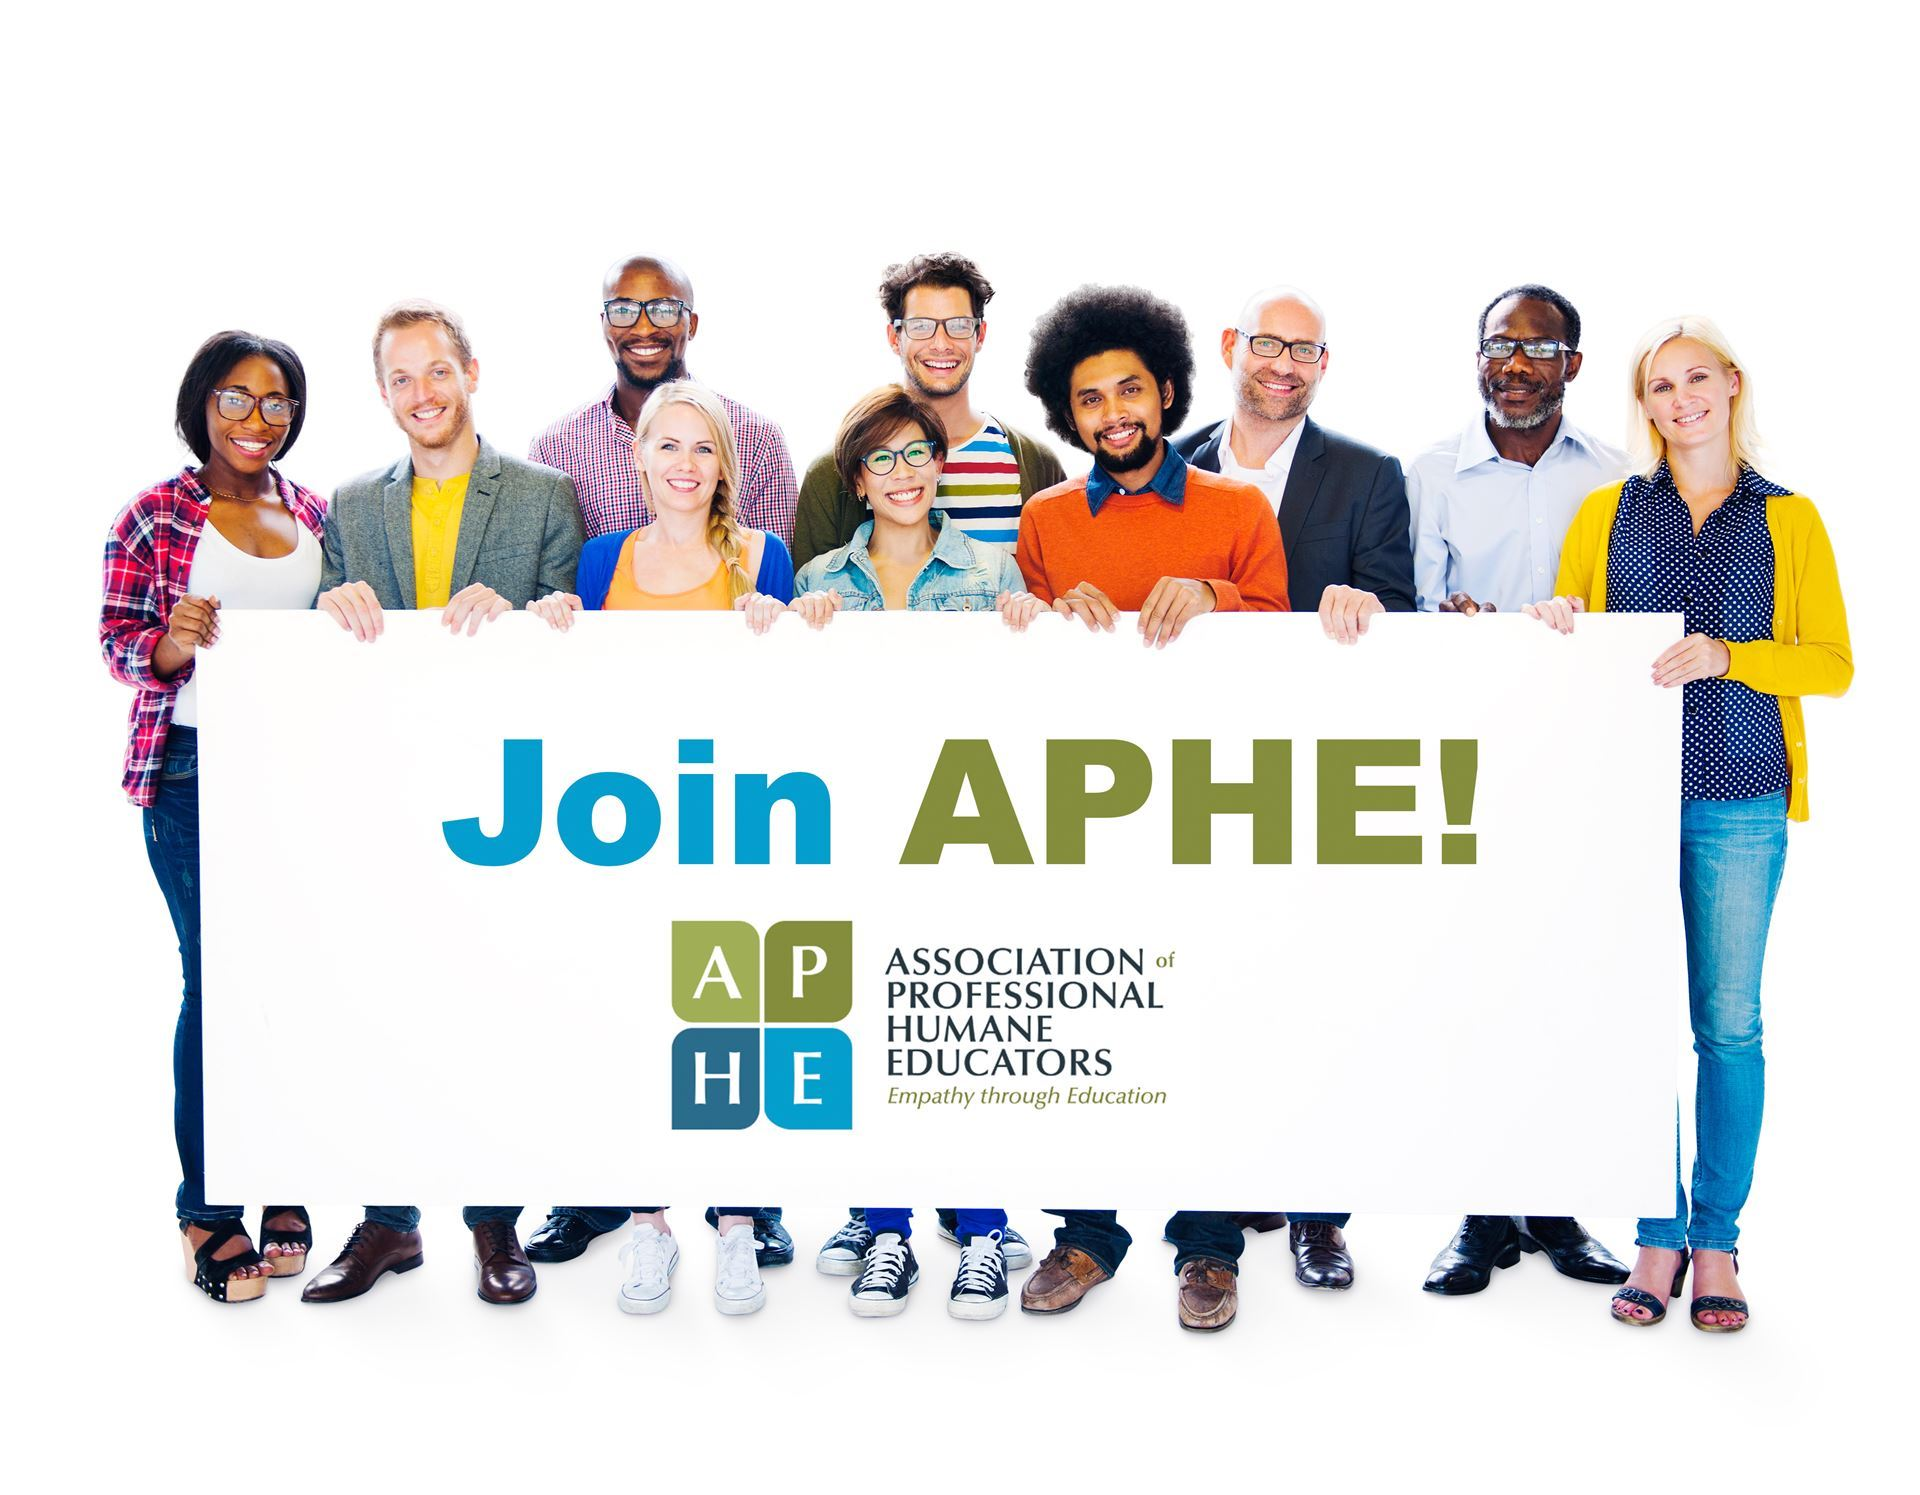 join aphe